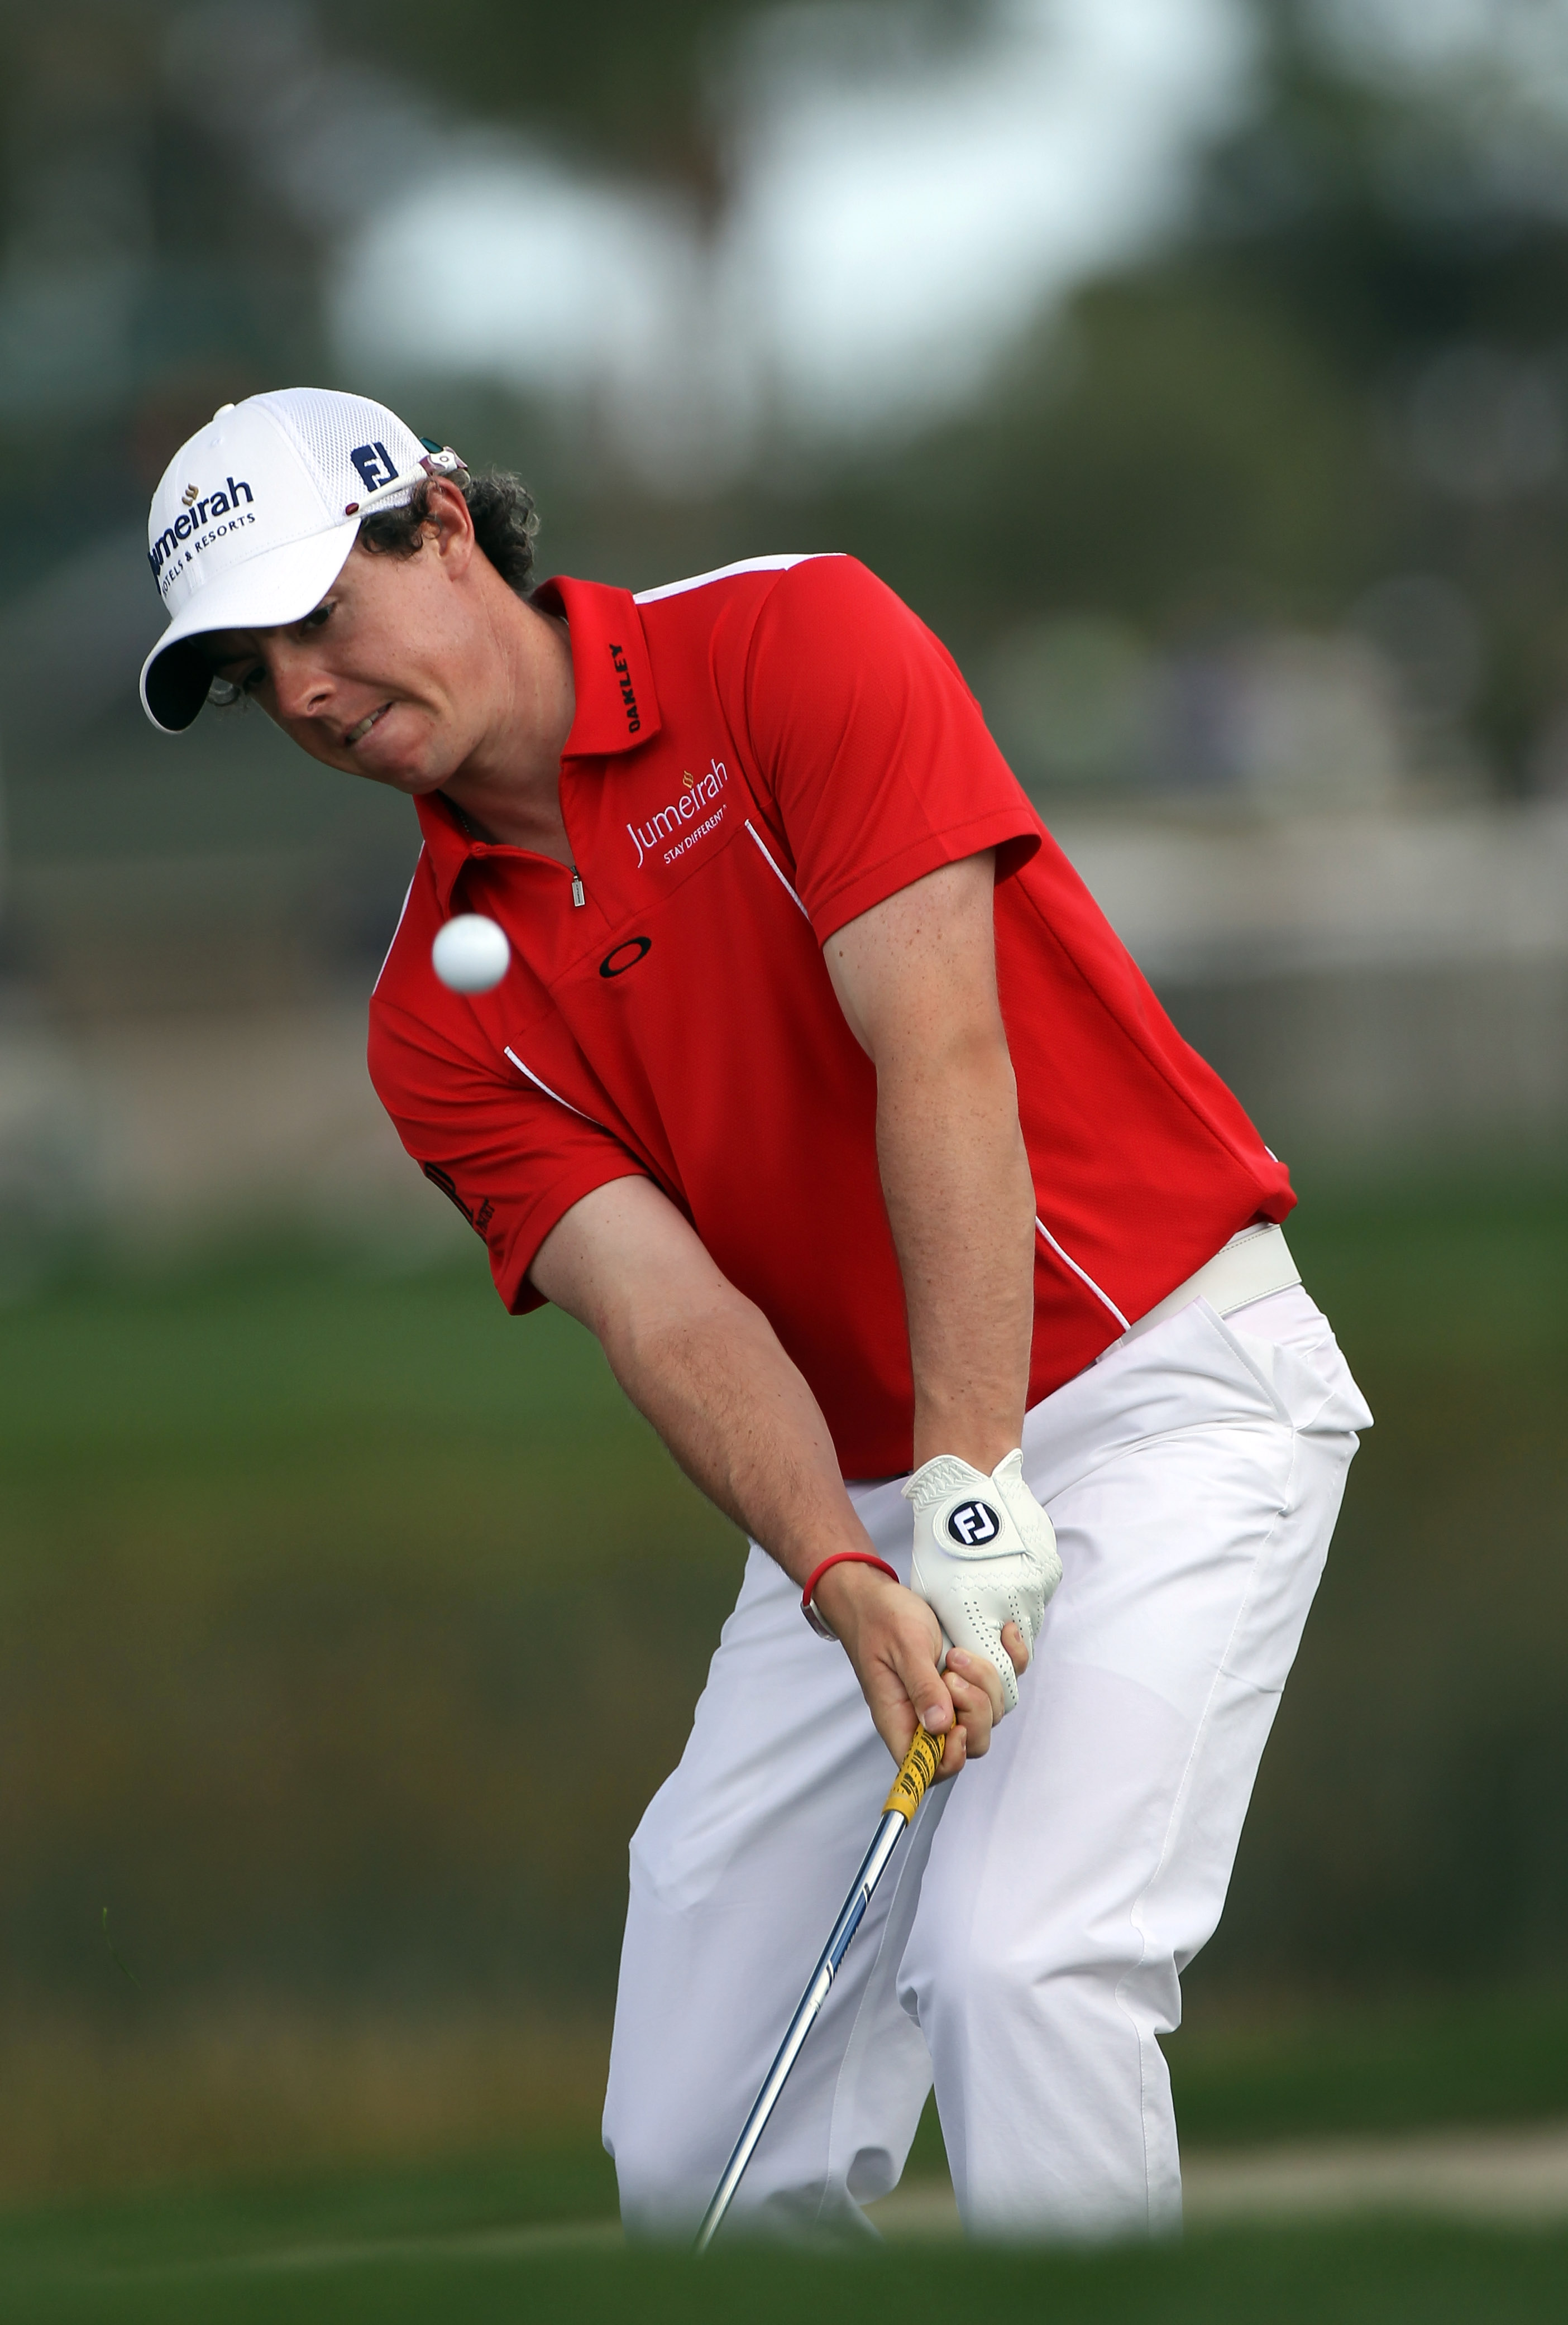 PALM BEACH GARDENS, FL - MARCH 04:  Rory McIlroy of Northern Ireland plays a shot during the second round of The Honda Classic at PGA National Resort and Spa on March 4, 2011 in Palm Beach Gardens, Florida.  (Photo by Sam Greenwood/Getty Images)